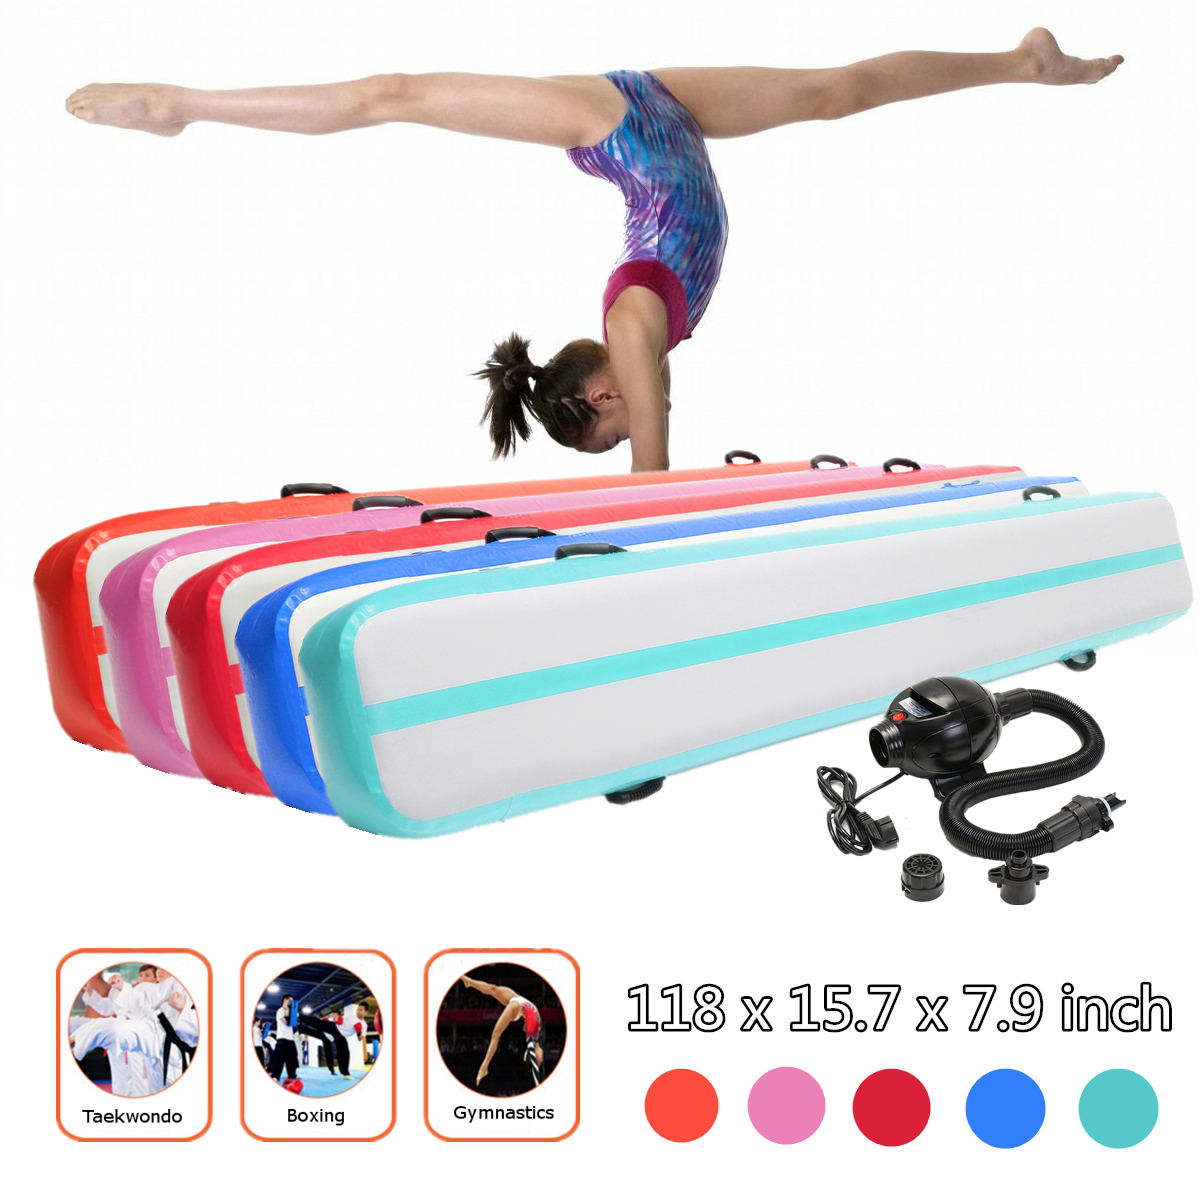 HOT 300*40*20cm Inflatable Air Track Tumbling Floor Gymnastics Practice Training Pad GYM Mat 100x60x10cm air tumbling track roller home training inflatable matfor gymnastics gym exercise mat air track tumbling mat